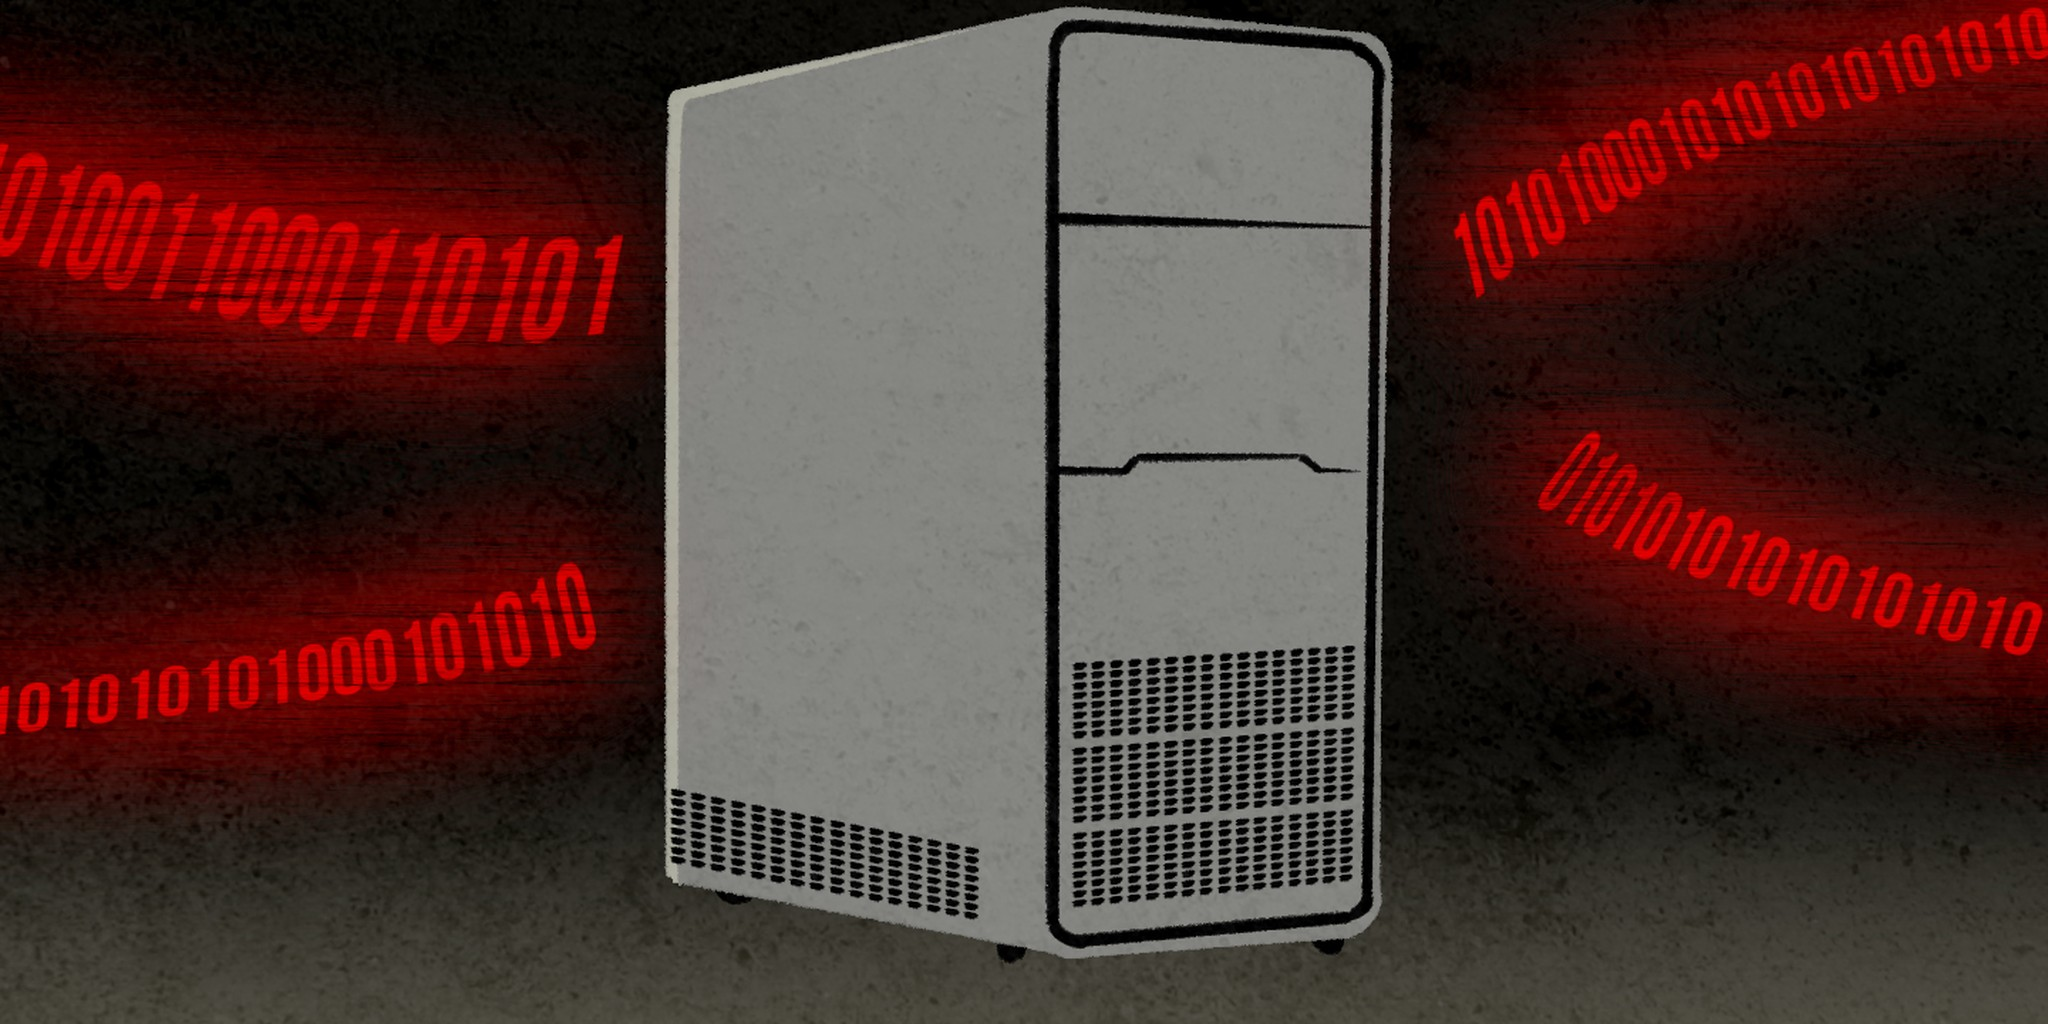 illustration of a computer server with data creeping up on it